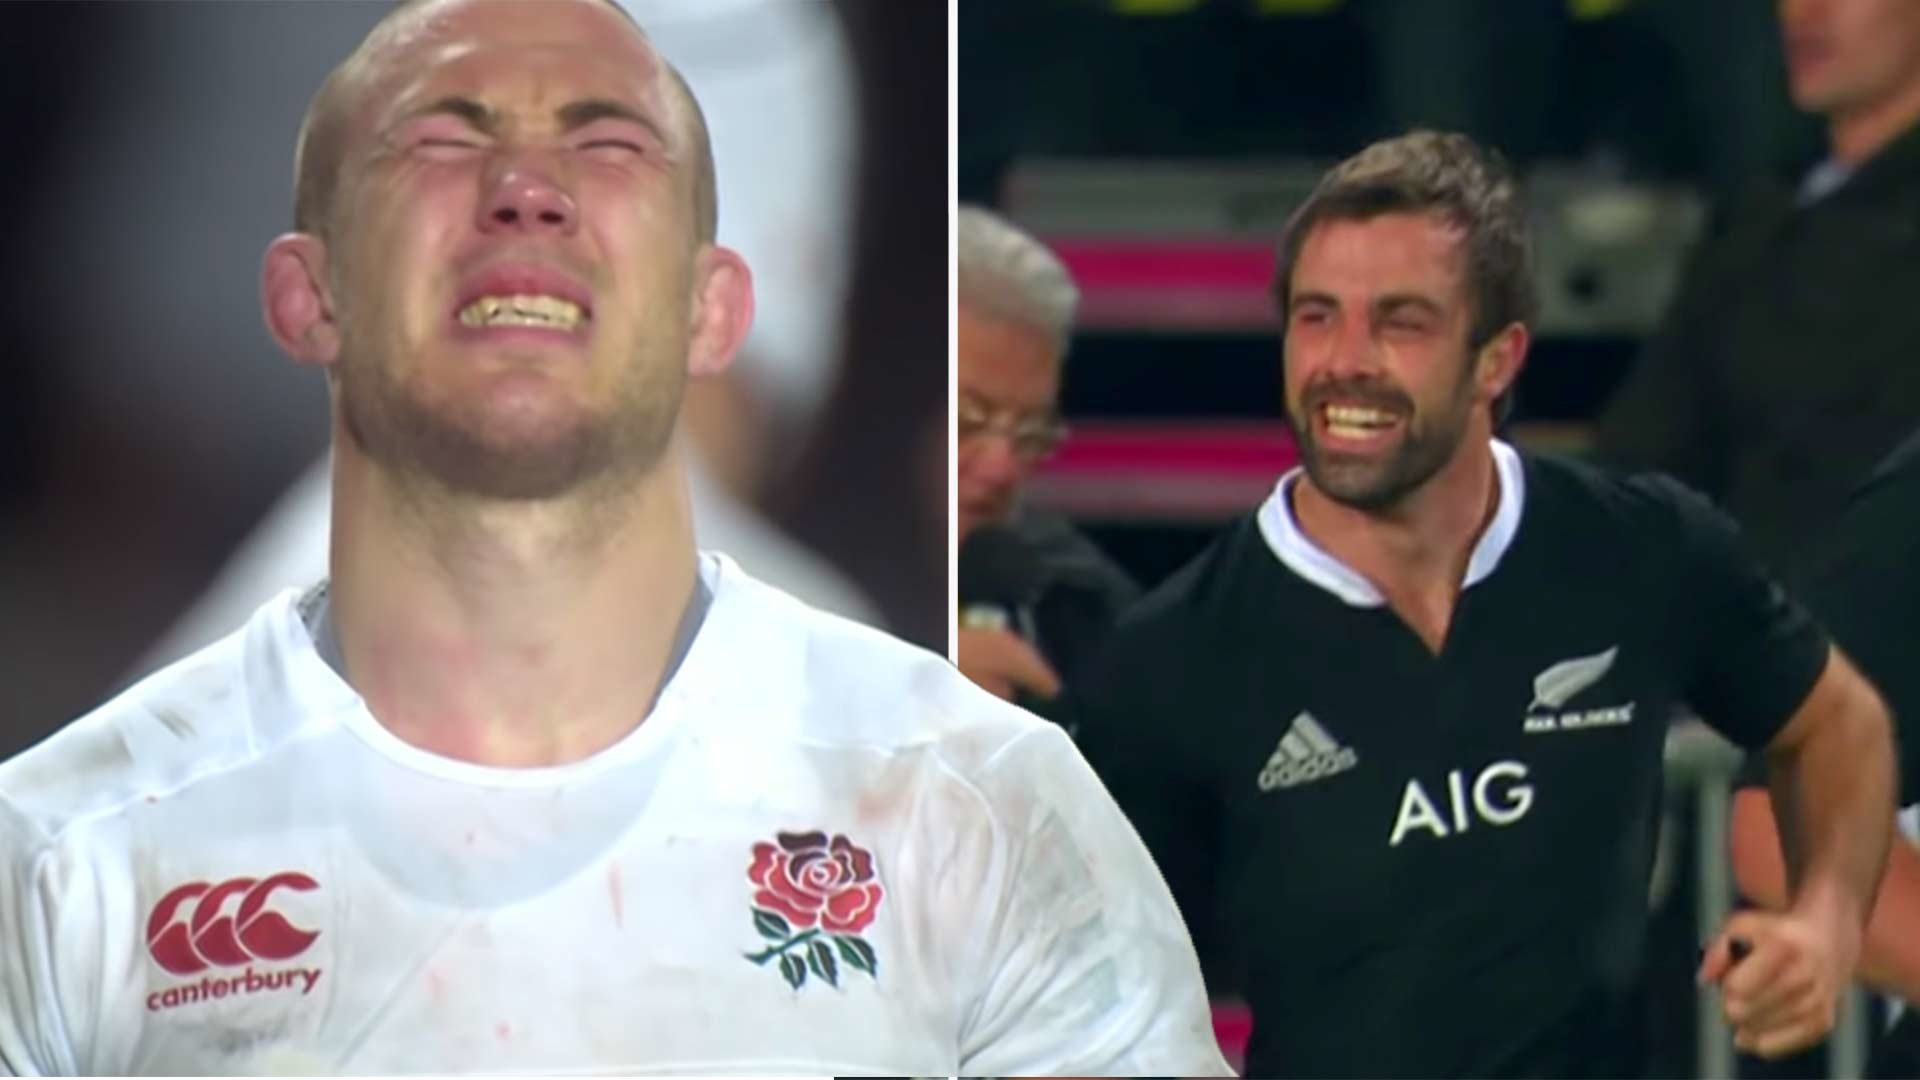 The All Blacks release full footage of England's most painful defeat in New Zealand ever